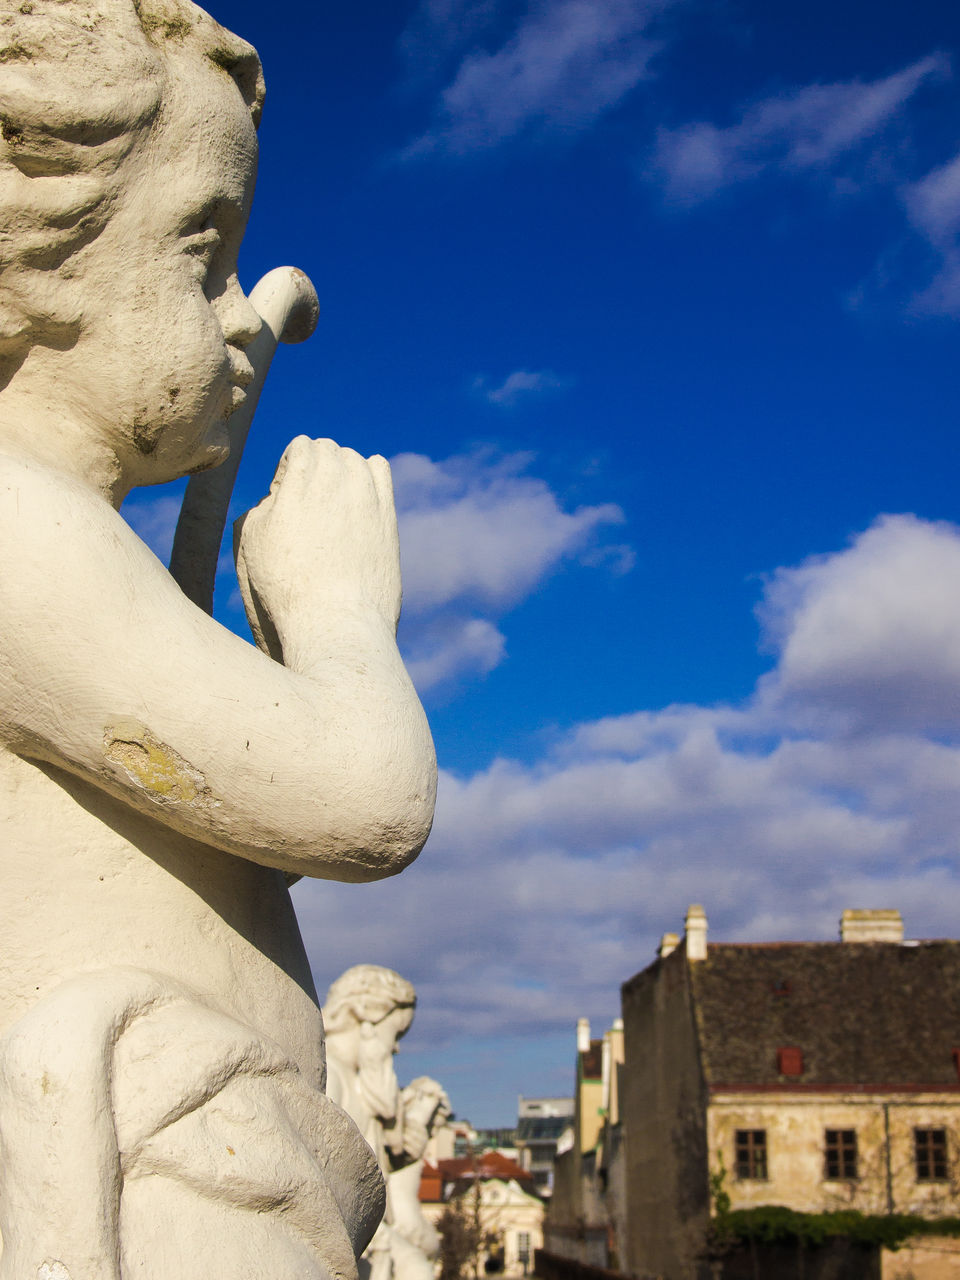 Statues At Belvedere Palace Against Blue Sky